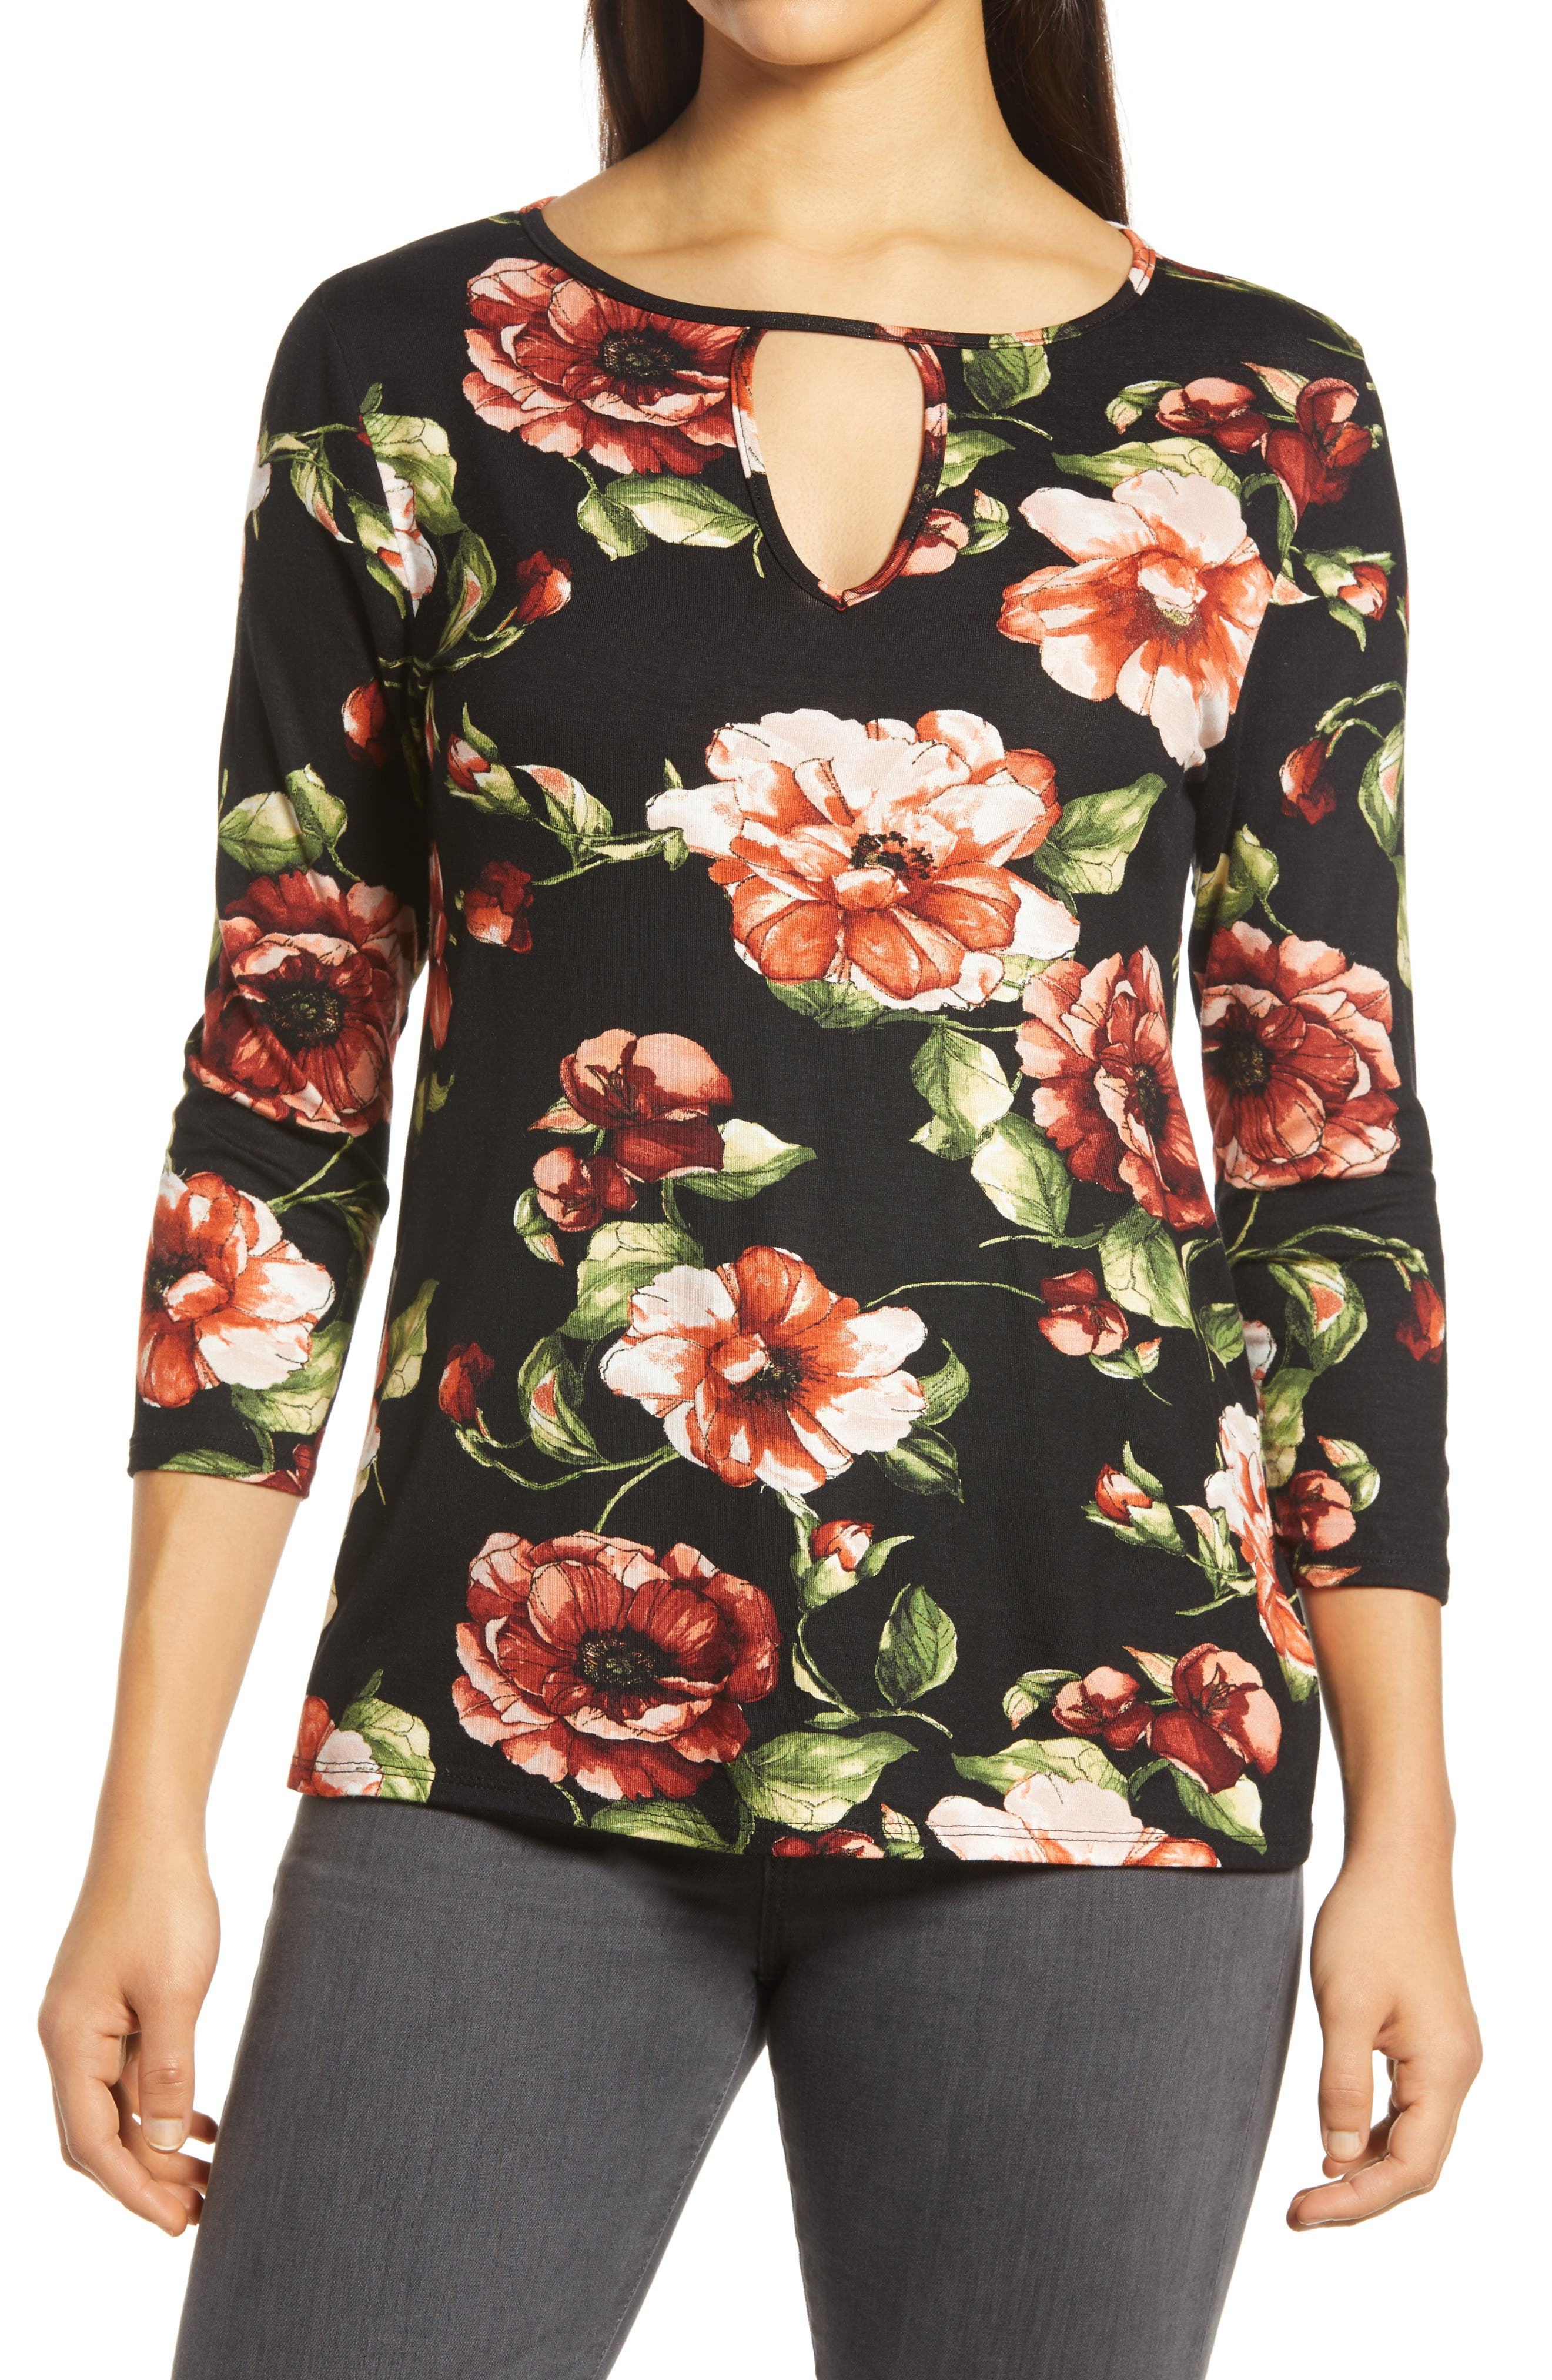 A painterly floral print combines with a bold yet modest keyhole neckline and three-quarter sleeves to take this effortlessly stylish top to the next level. Style Name: Loveappella Floral Keyhole Top. Style Number: 6134062. Available in stores.